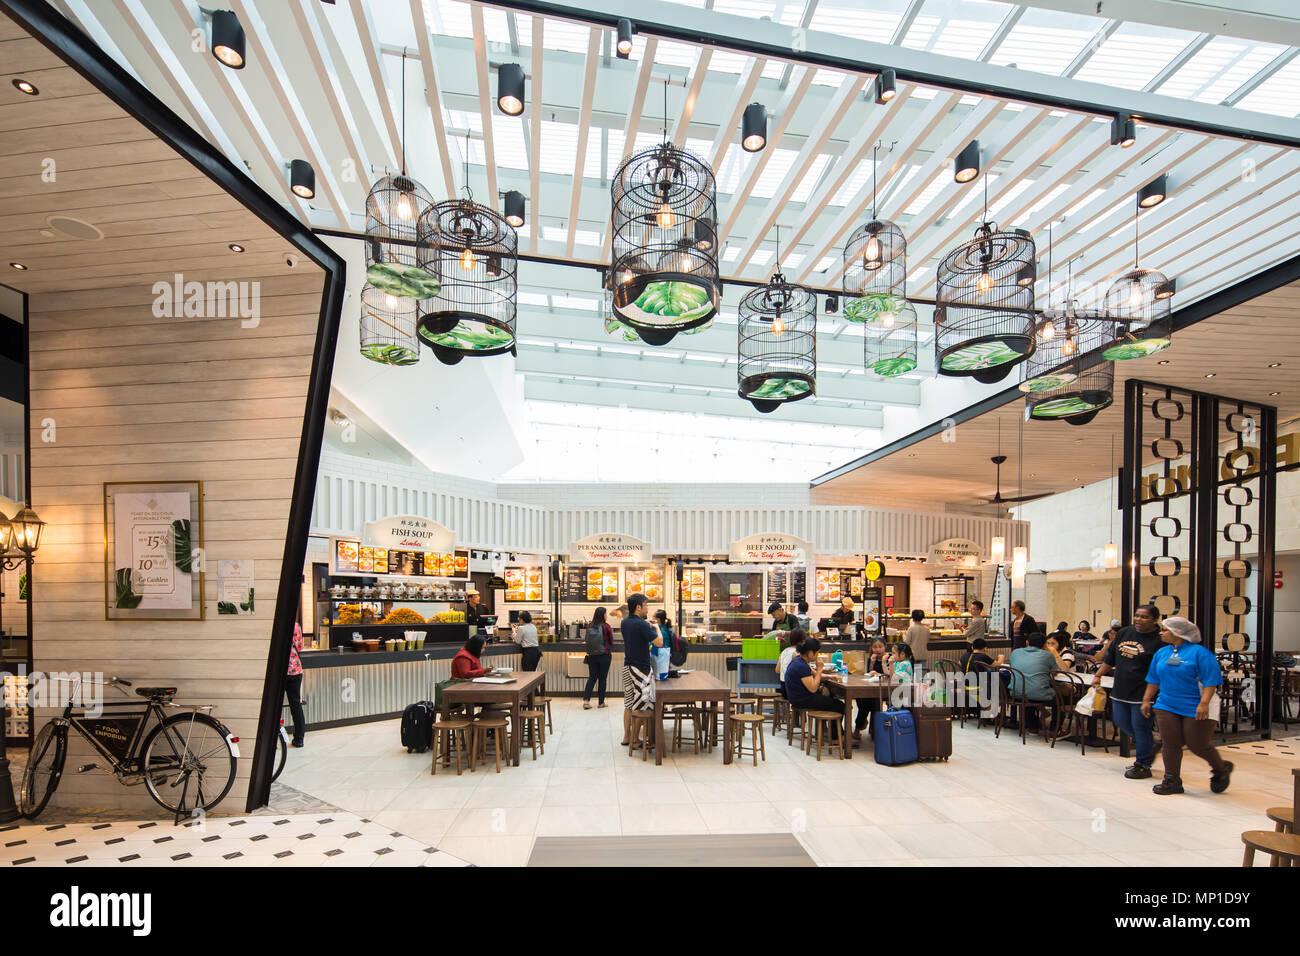 Interior design of Food Emporium or commonly know as food court or dinning area at Singapore Changi Airport terminal 4 - Stock Image